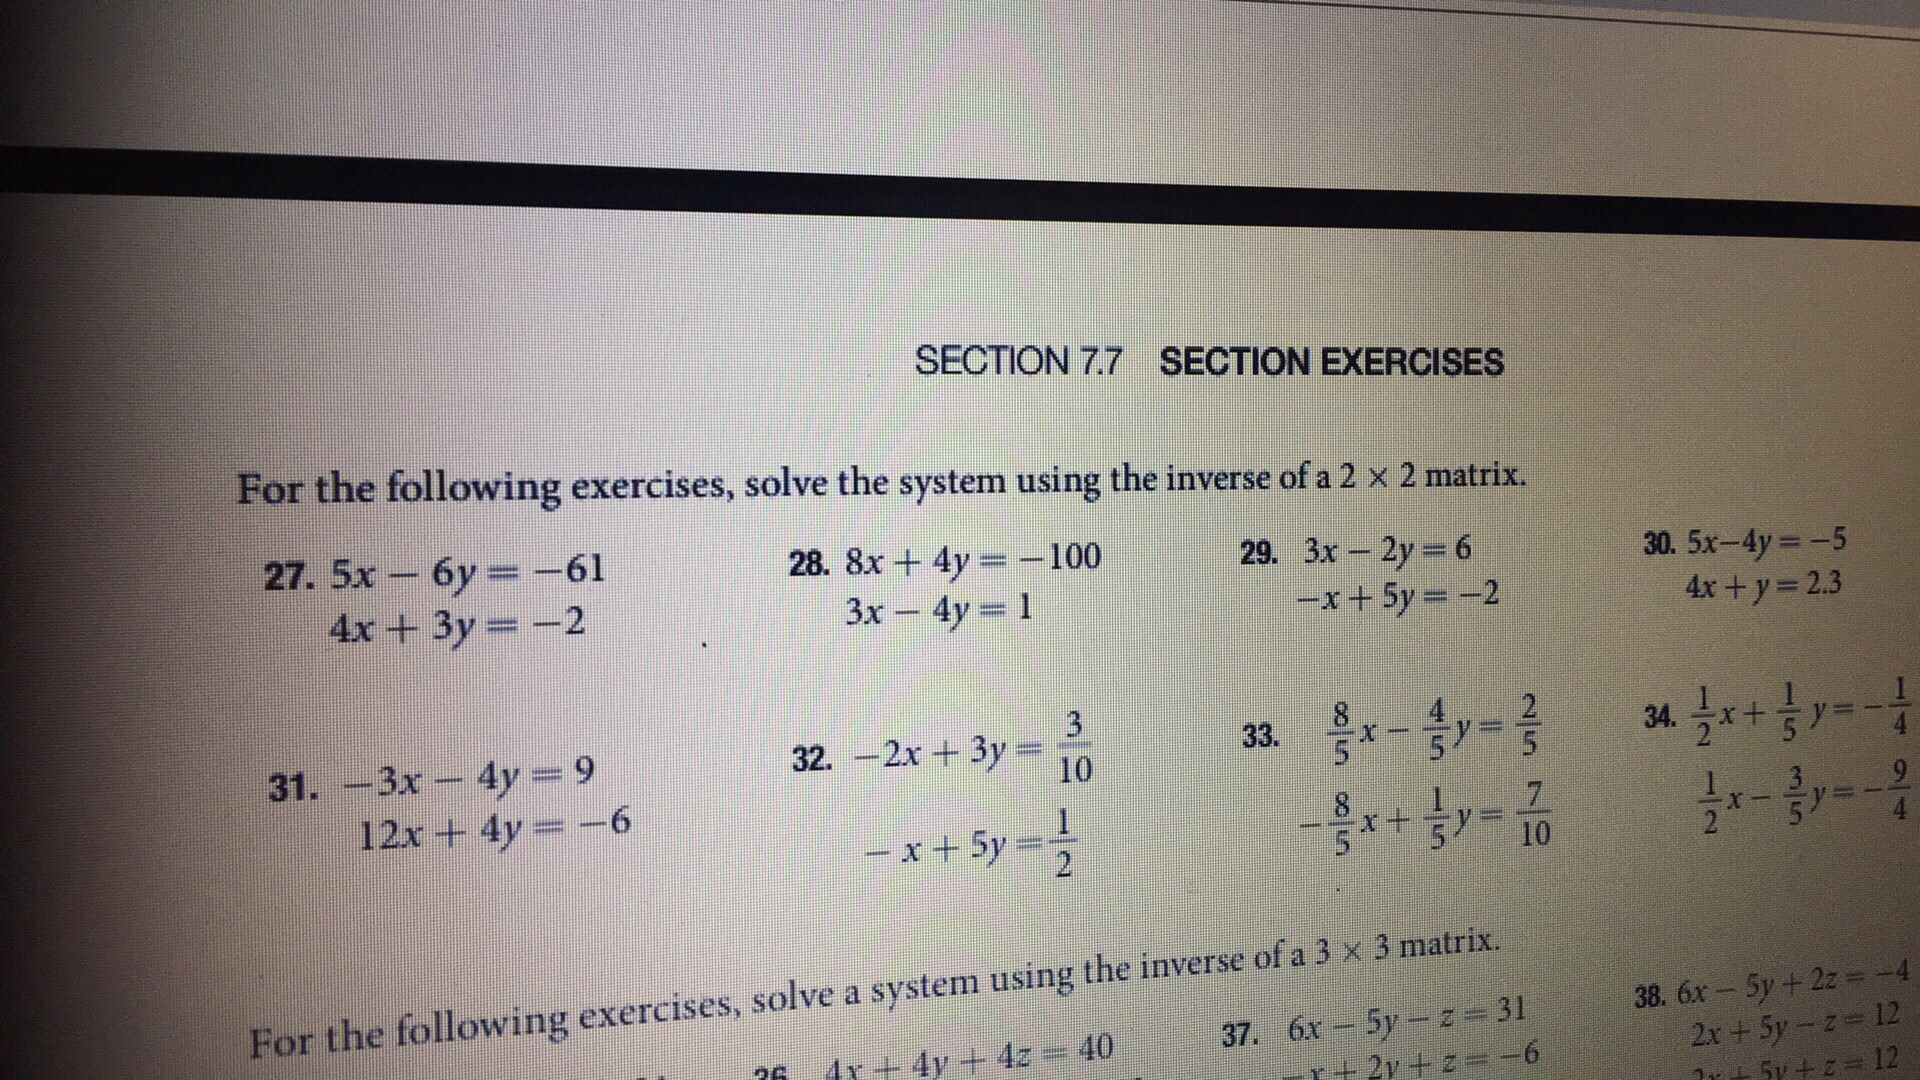 SECTION 7.7 SECTION EXERCISES For the following exercises, solve the system using the inverse of a 2 x 2 matrix. 27. 5x-6y =-61 4x+3y 2 28. 8x + 4y-:-100 3x -4y 1 29. 3x-2y = 6 30. 5x-4y -5 4x+y- 2.3 -x + 5y =-2 31. -3x - 4y 9 2 5 12x + 4y =-6 For the following exercises, solve a system using the inverse of a 3 x 3 matrix 38. 6x- 5y+2z-4 12